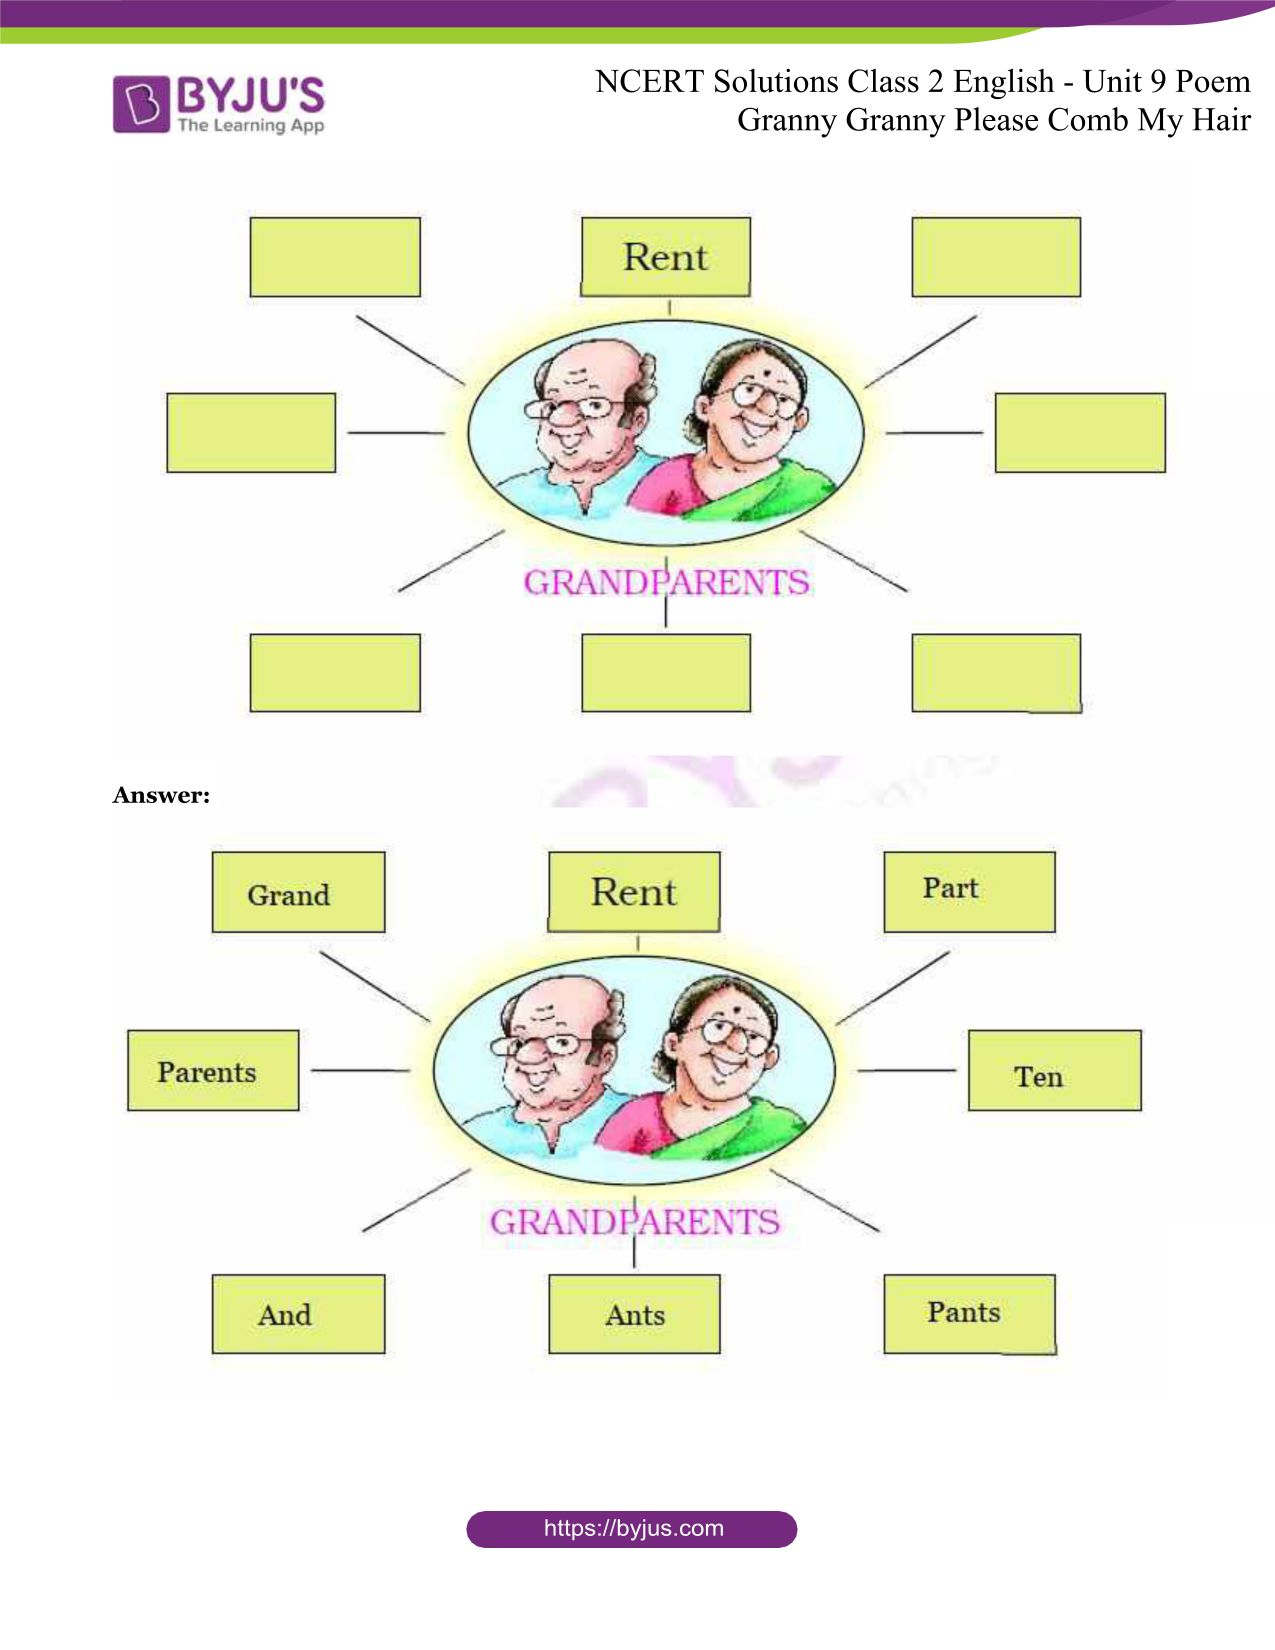 NCERT Solutions for Class 2 English Unit 9 Poem - Granny ...